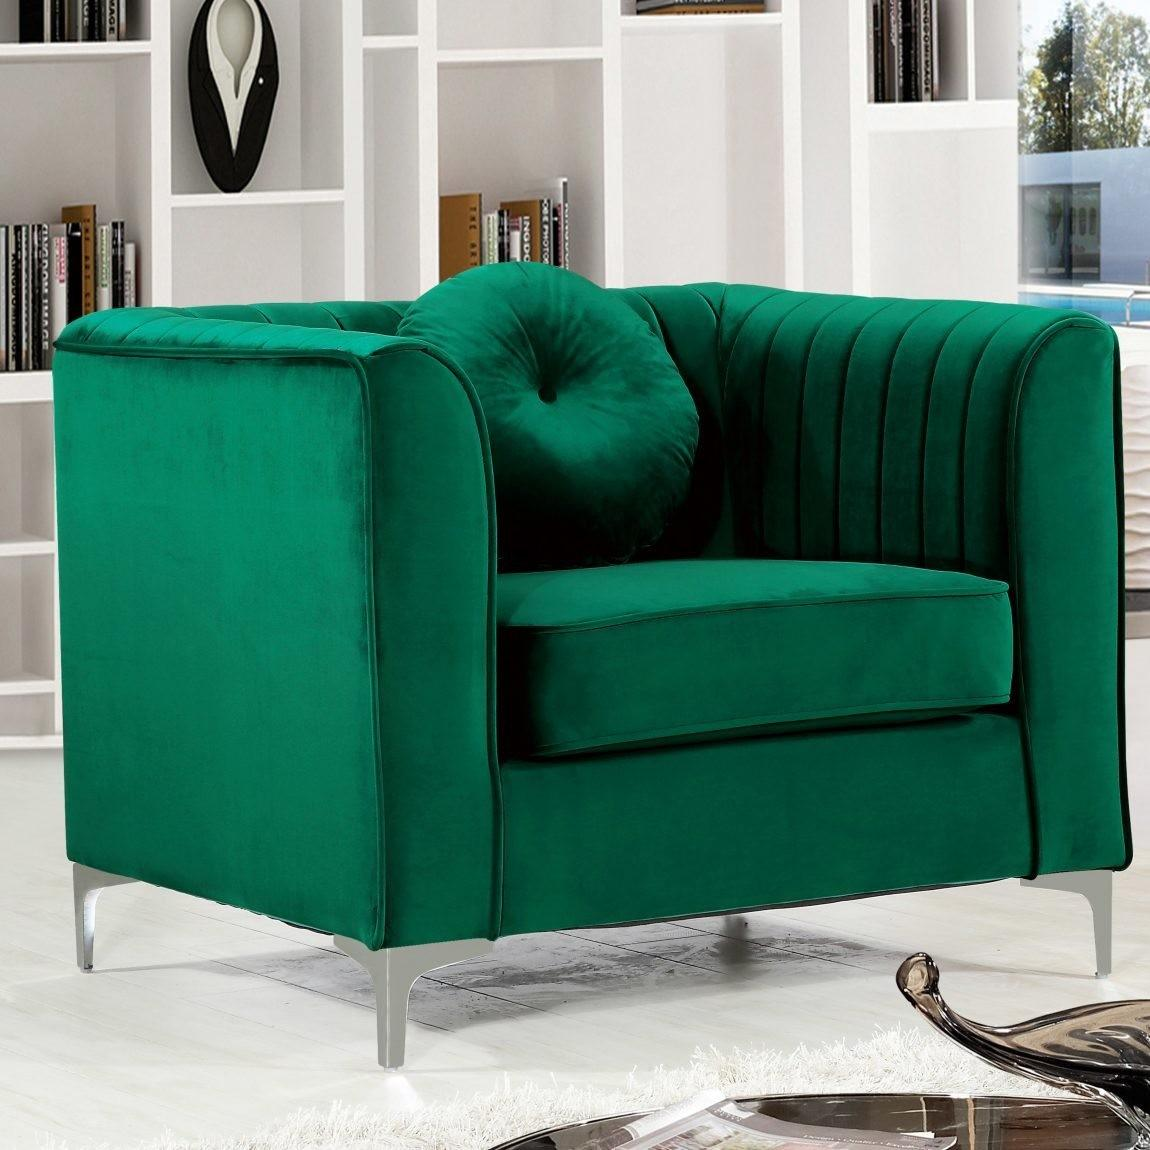 Emerald Green Interior Decor Trends Inspiration Arts